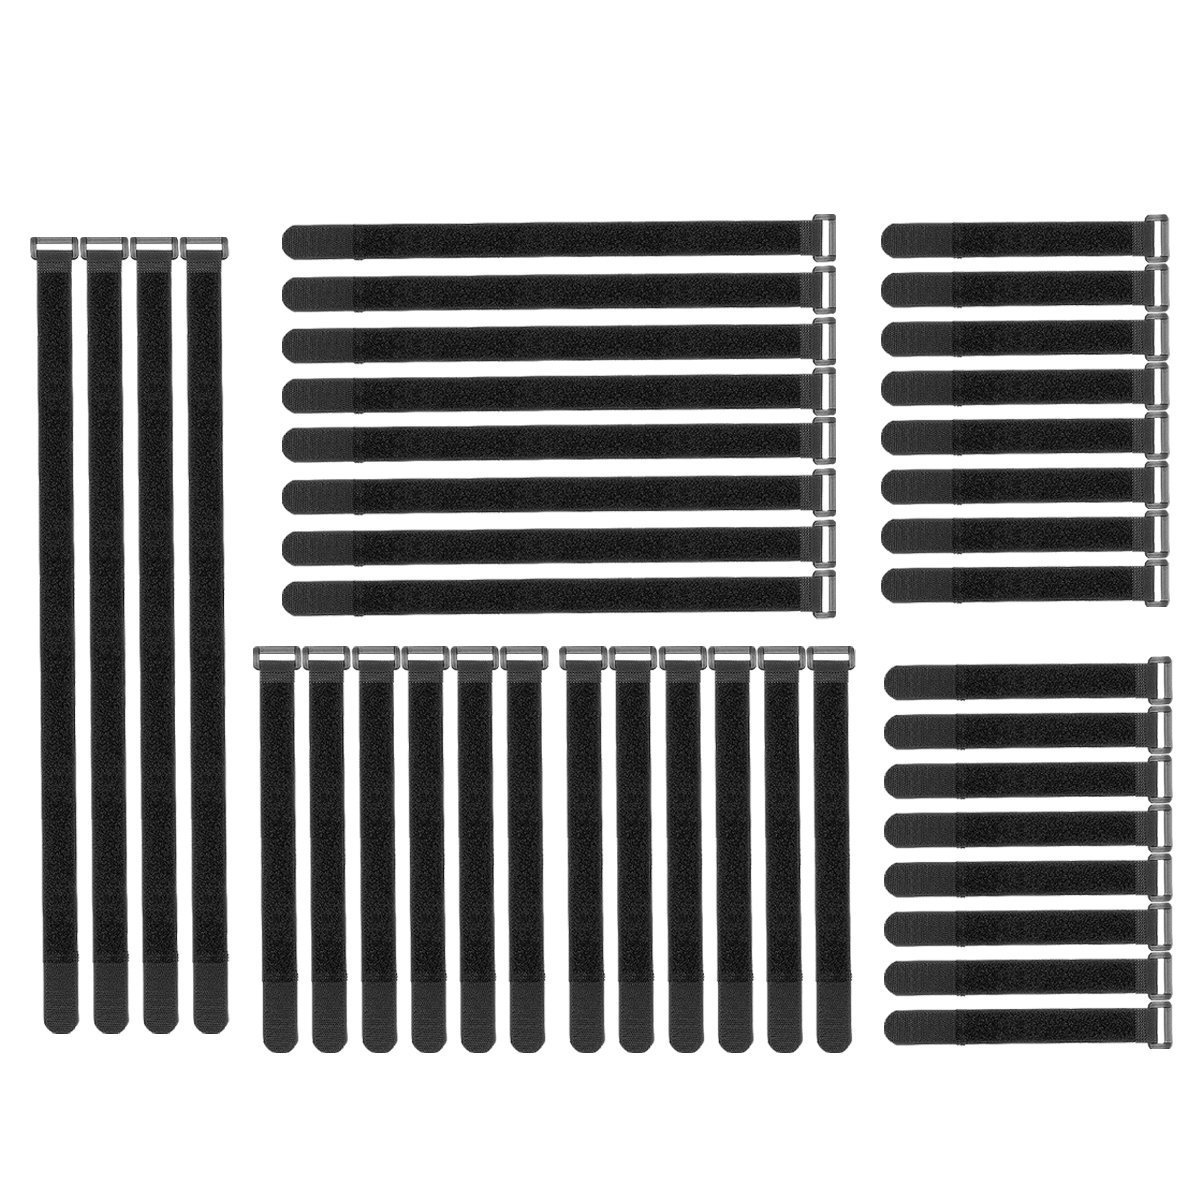 40 Pack Cable Straps,Cable Ties,Reusable Fastening Cord Ties for Cord Cable Management,Black